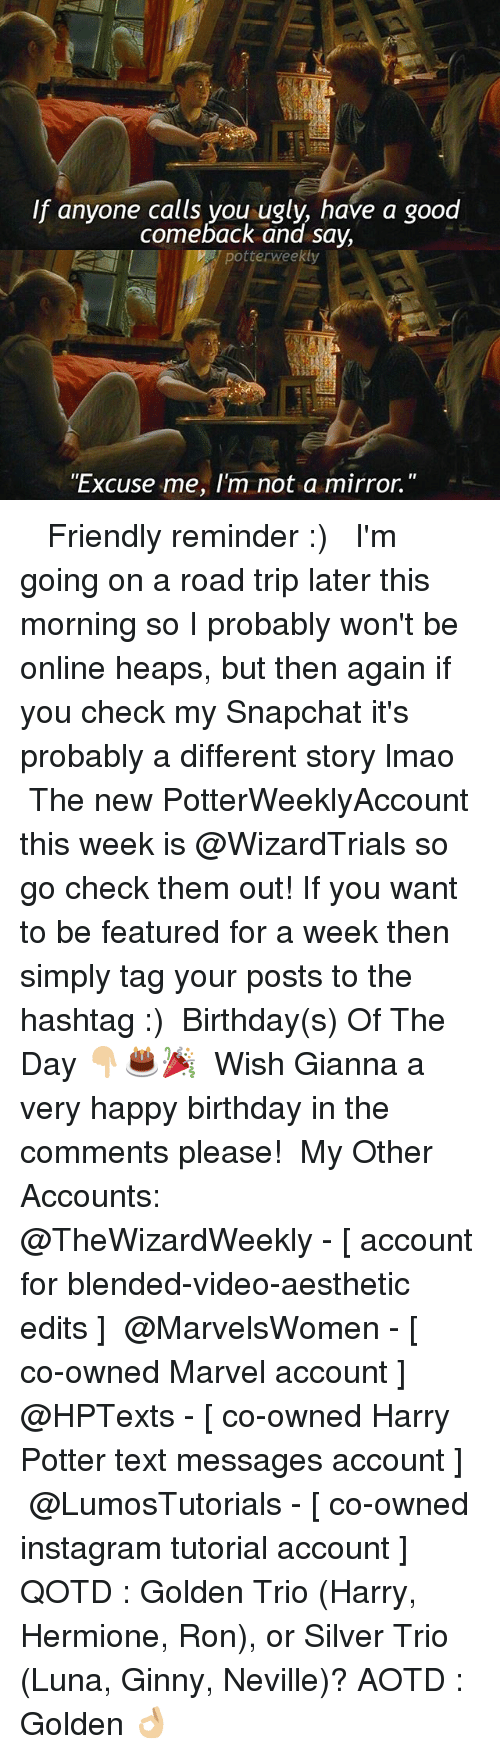 "Birthday, Harry Potter, and Hermione: If aryone call yoru ugly have a good  f anyone calls you ugly, have a good  comeback and say,  potterweekly  ""Excuse me, I'm not a mirror."" ✎✐✎ ↯ ⇢ Friendly reminder :) ↯ ⇢ I'm going on a road trip later this morning so I probably won't be online heaps, but then again if you check my Snapchat it's probably a different story lmao ↯ ⇢ The new PotterWeeklyAccount this week is @WizardTrials so go check them out! If you want to be featured for a week then simply tag your posts to the hashtag :) ✎✐✎ Birthday(s) Of The Day 👇🏼🎂🎉 ⇢ Wish Gianna a very happy birthday in the comments please! ✎✐✎ My Other Accounts: ⇢ @TheWizardWeekly - [ account for blended-video-aesthetic edits ] ⇢ @MarvelsWomen - [ co-owned Marvel account ] ⇢ @HPTexts - [ co-owned Harry Potter text messages account ] ⇢ @LumosTutorials - [ co-owned instagram tutorial account ] ✎✐✎ QOTD : Golden Trio (Harry, Hermione, Ron), or Silver Trio (Luna, Ginny, Neville)? AOTD : Golden 👌🏼"